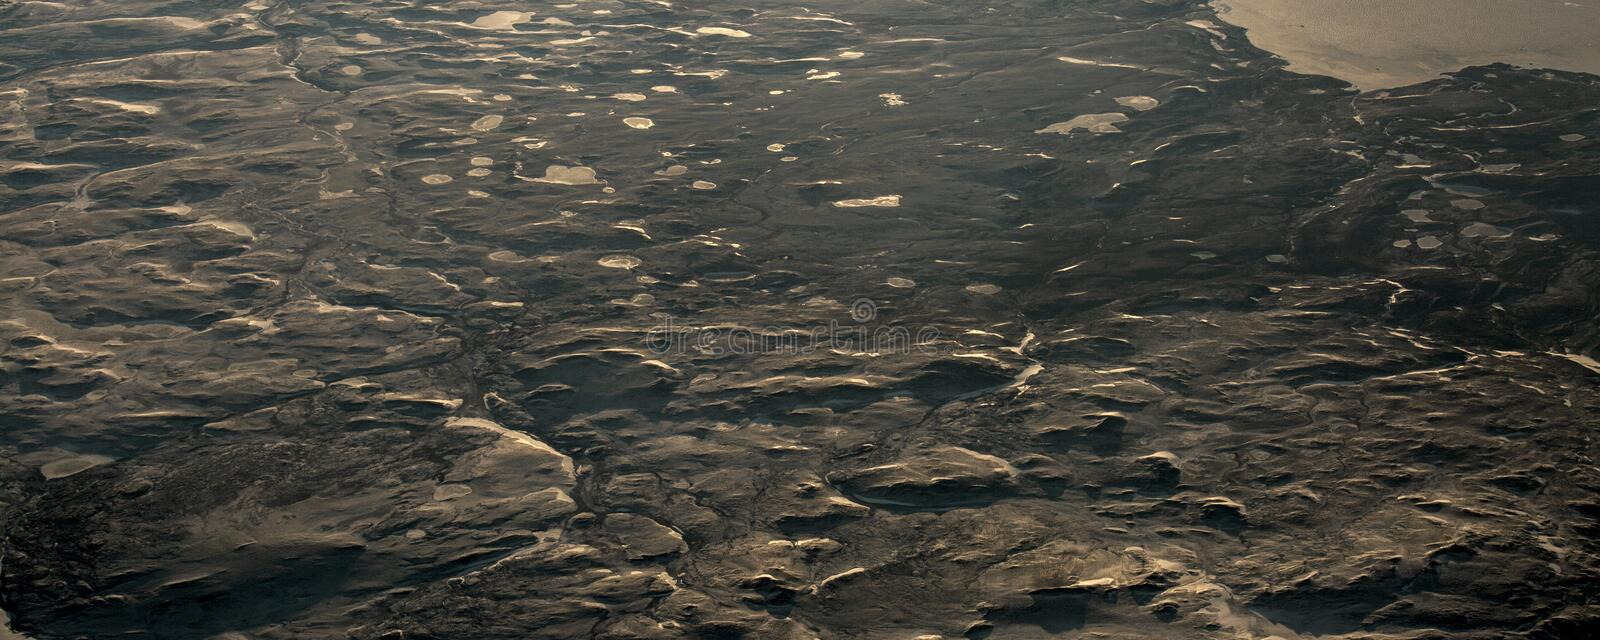 15Take an aerial view of the ice and sunrise over the bering strait.(1). The bering strait is located in the high latitudes, cold weather, many storms royalty free stock images